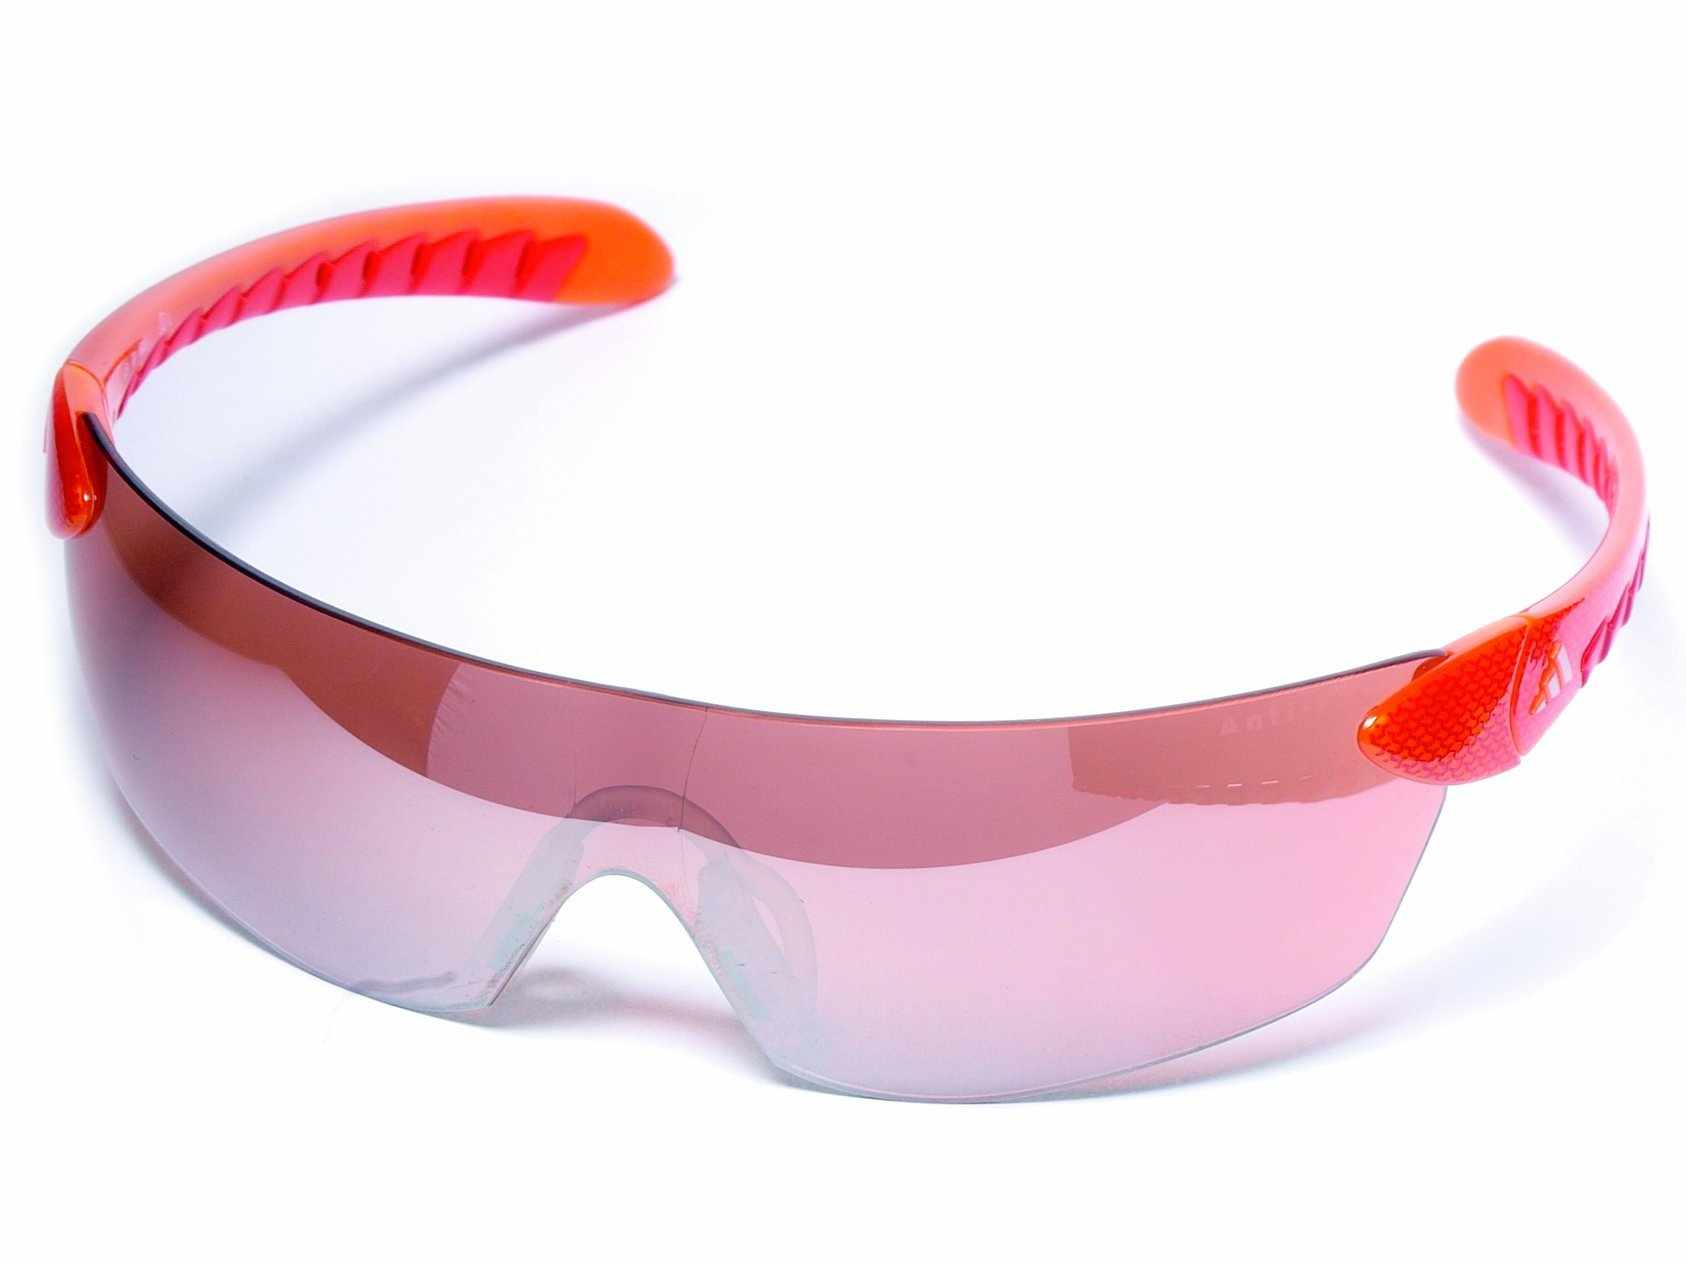 Adidas shades available in two widths.